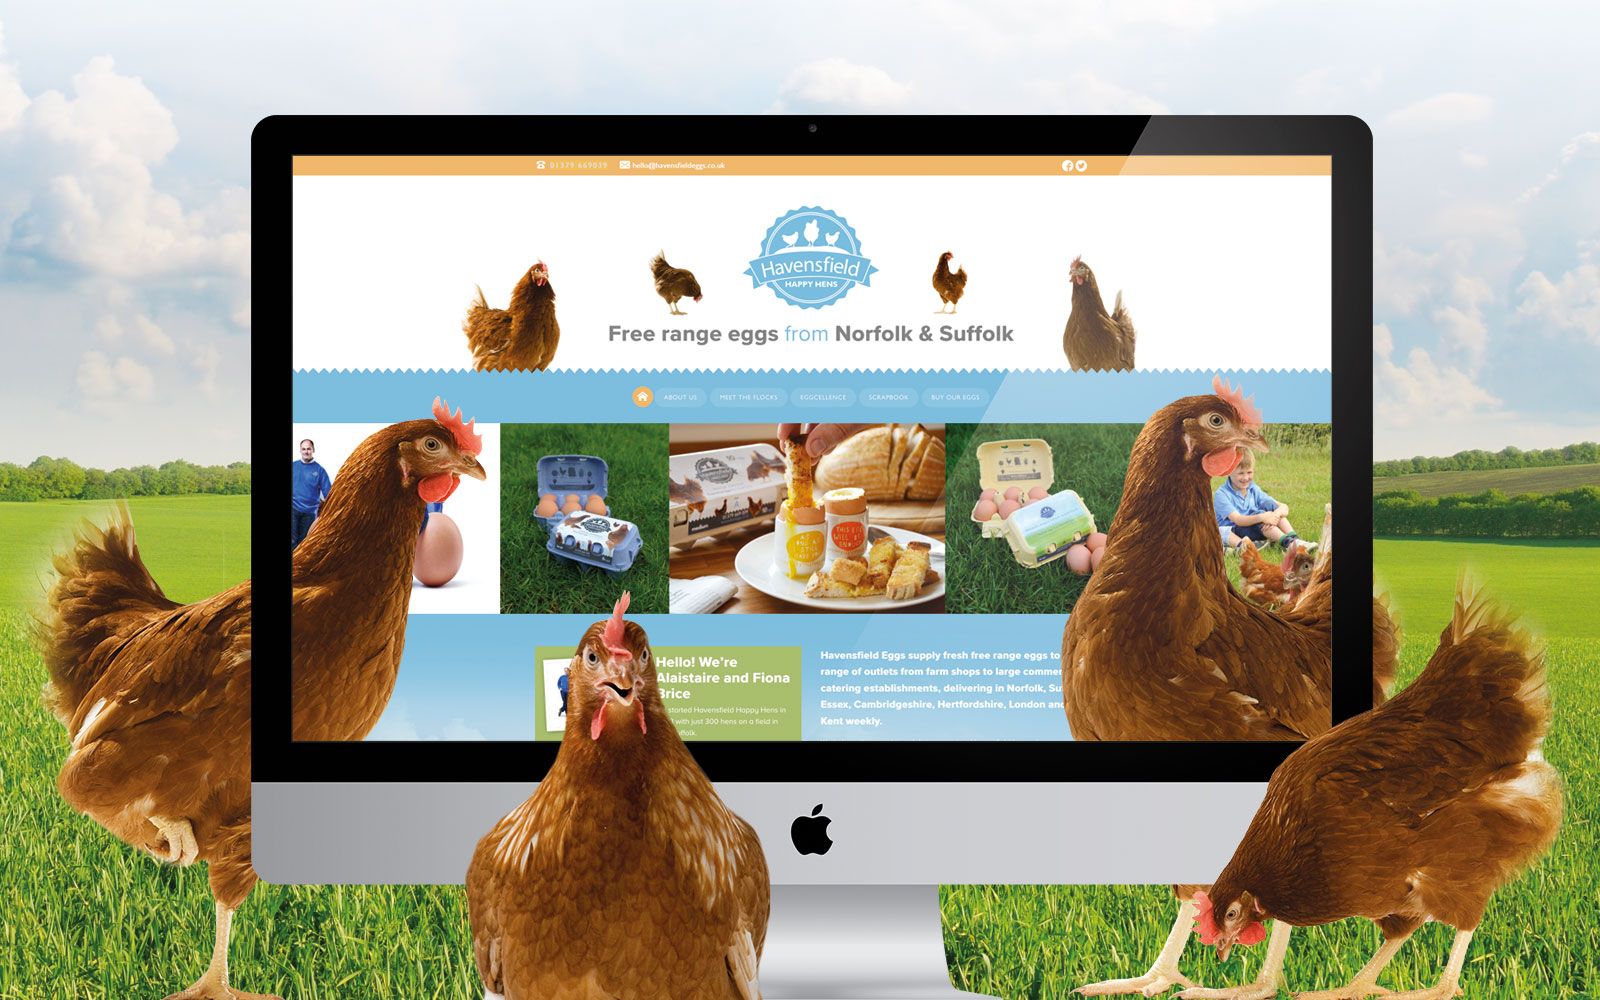 Havensfield eggs website and chickens